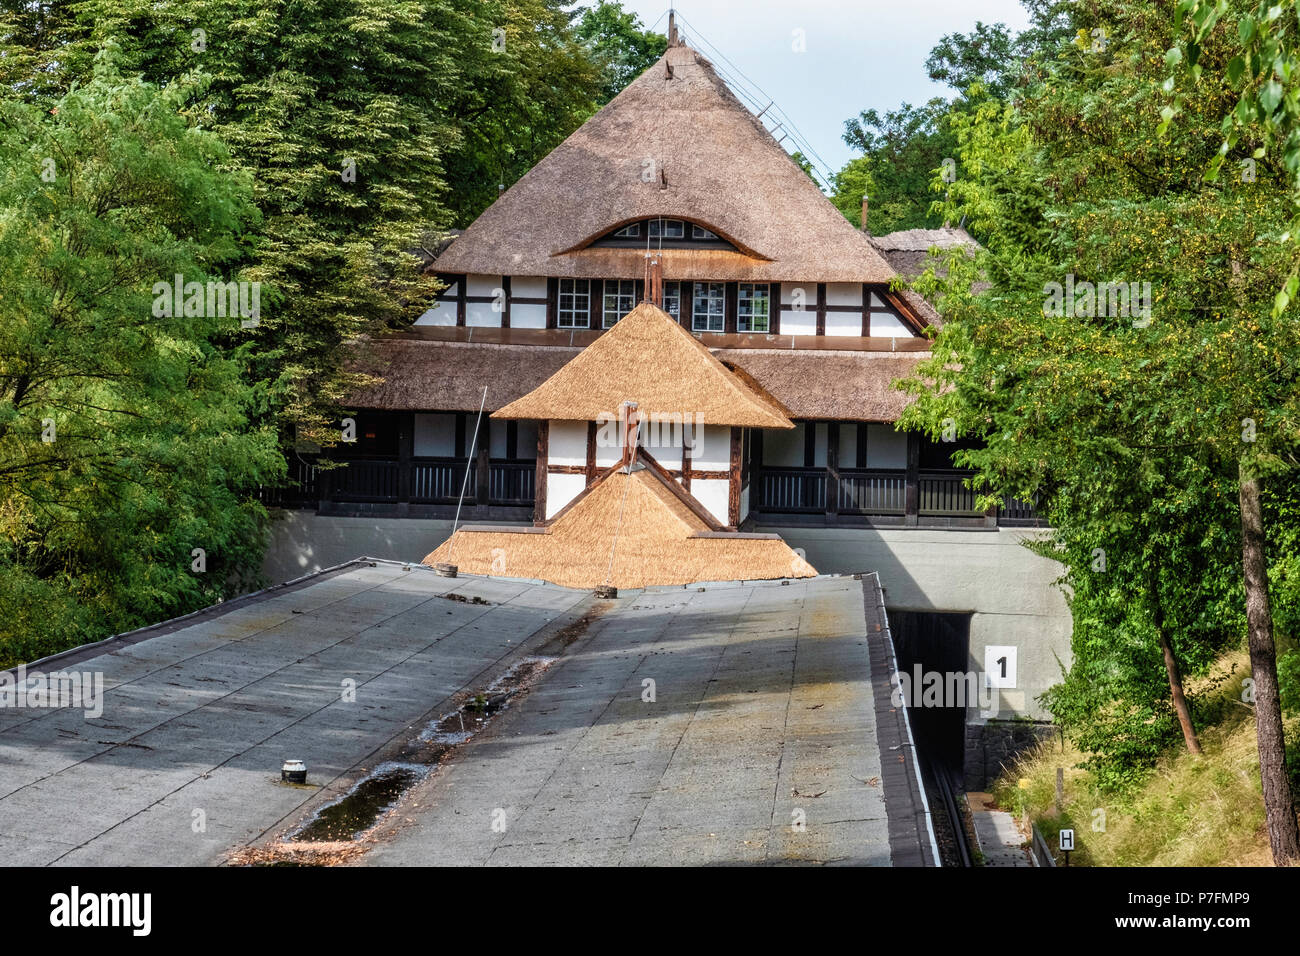 Berlin Dahlem-Dorf U-Bahn underground railway station on the U 3 line. Historic building exterior with thatched roof and tudor-style facade. - Stock Image